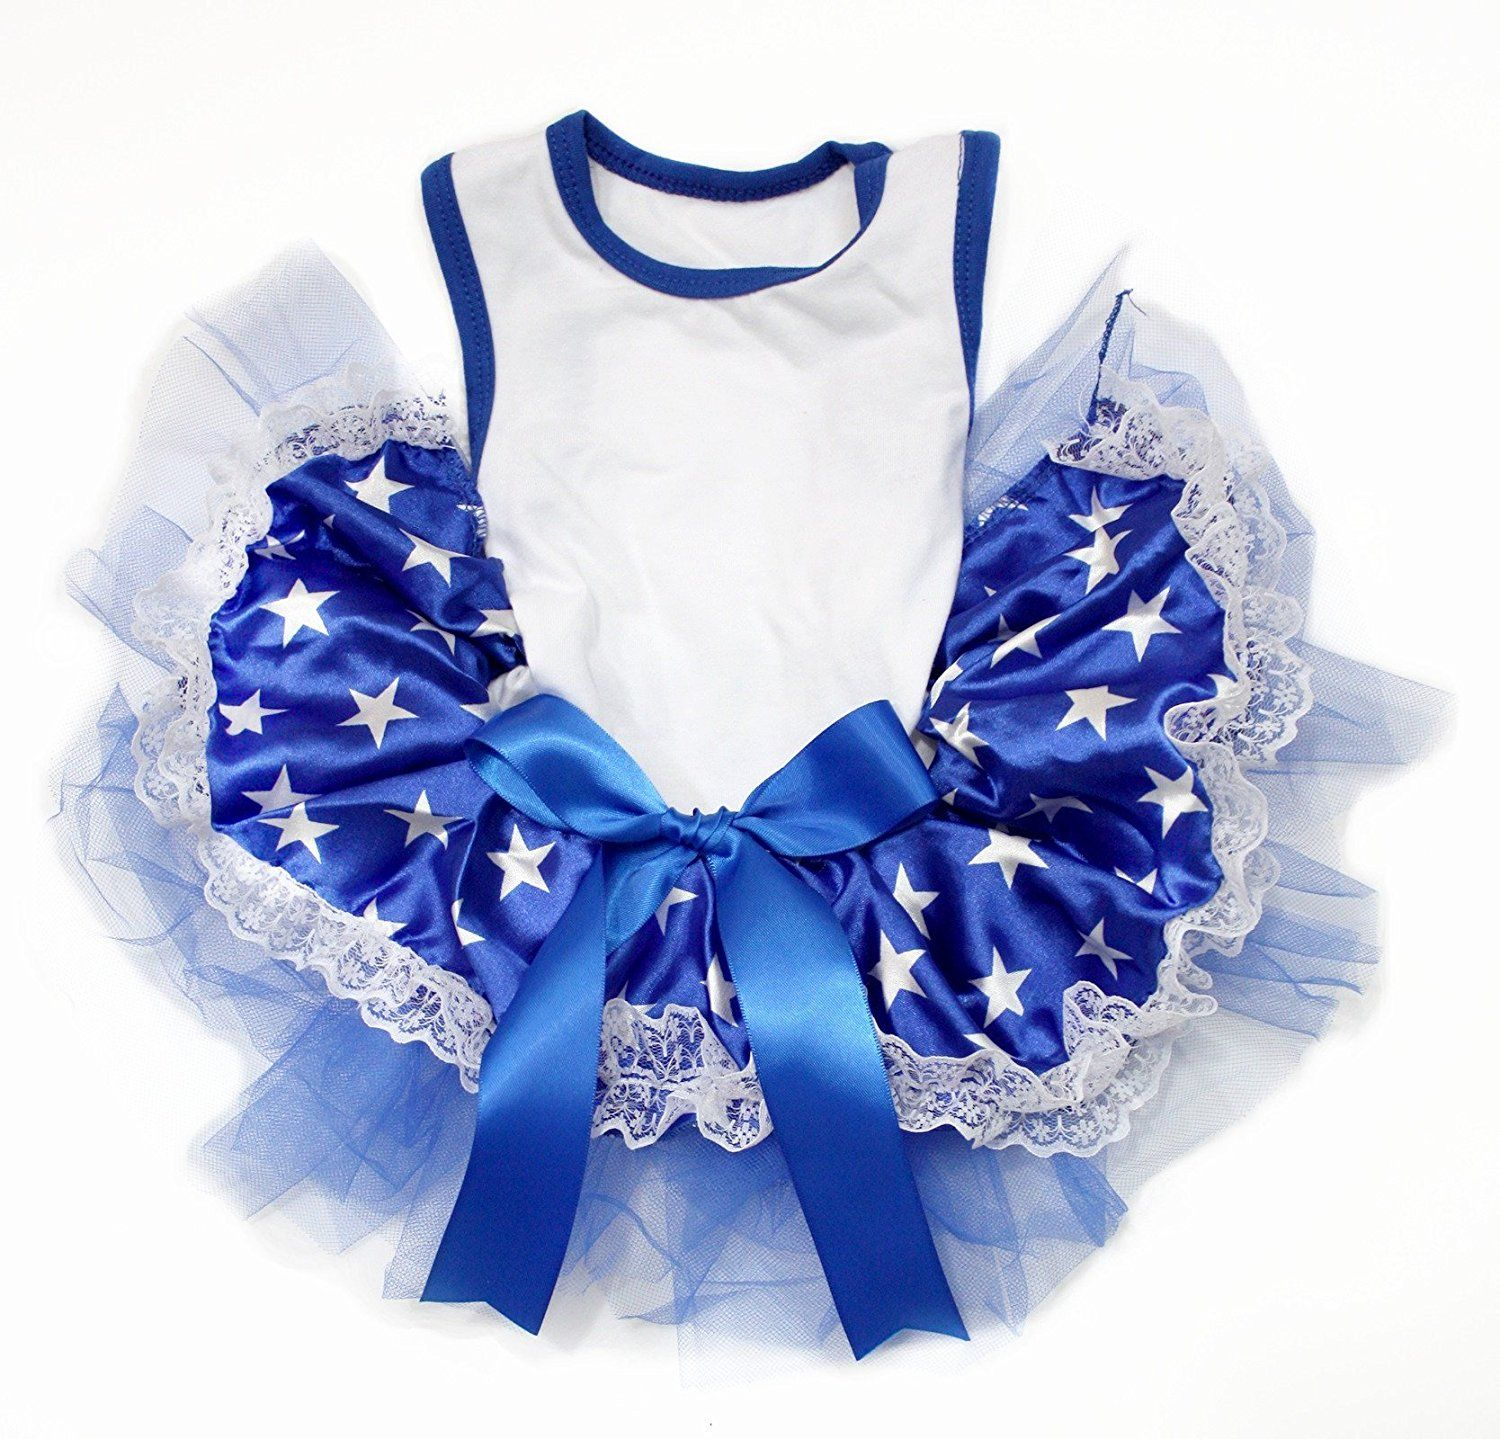 d8778df04 Puppy Clothes Dog Dress Plain White Cotton Shirt Patriotic Stars Blue Lace  Tutu *** Want additional info? Click on the image. (This is an affiliate  link) # ...